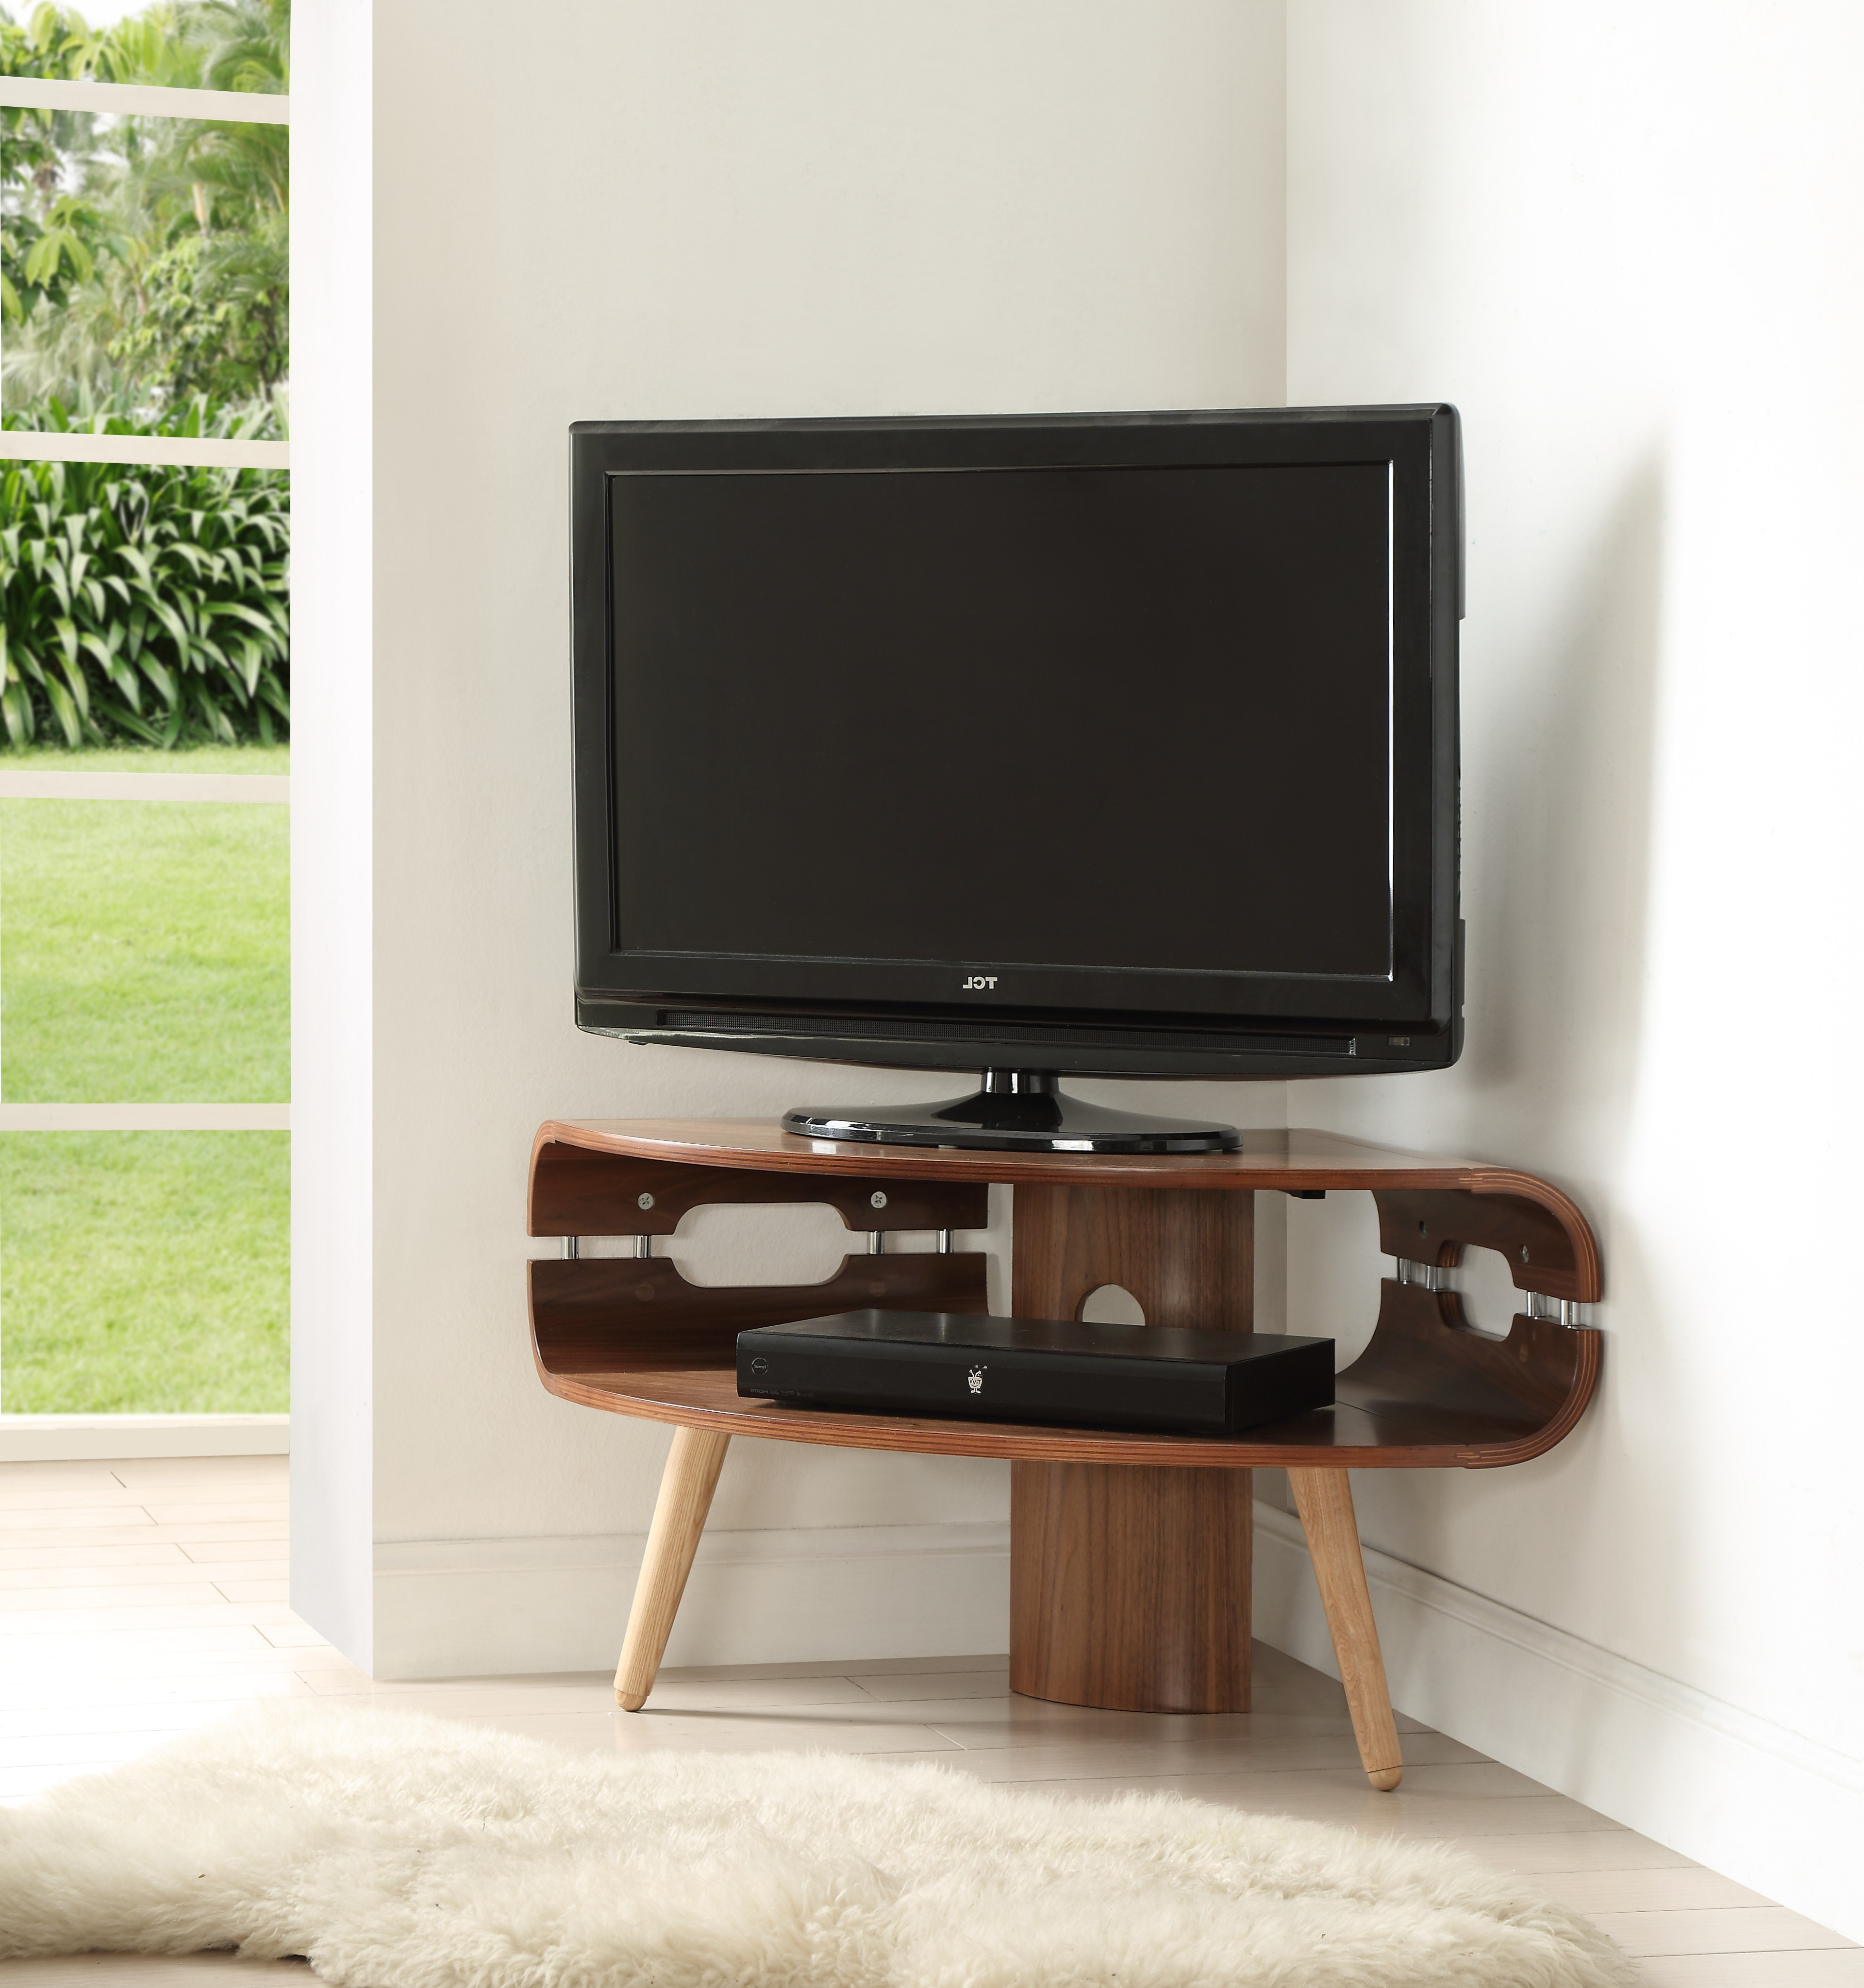 Jf701 Corner Tv Stand – Cooks With Most Popular Cornet Tv Stands (View 6 of 20)